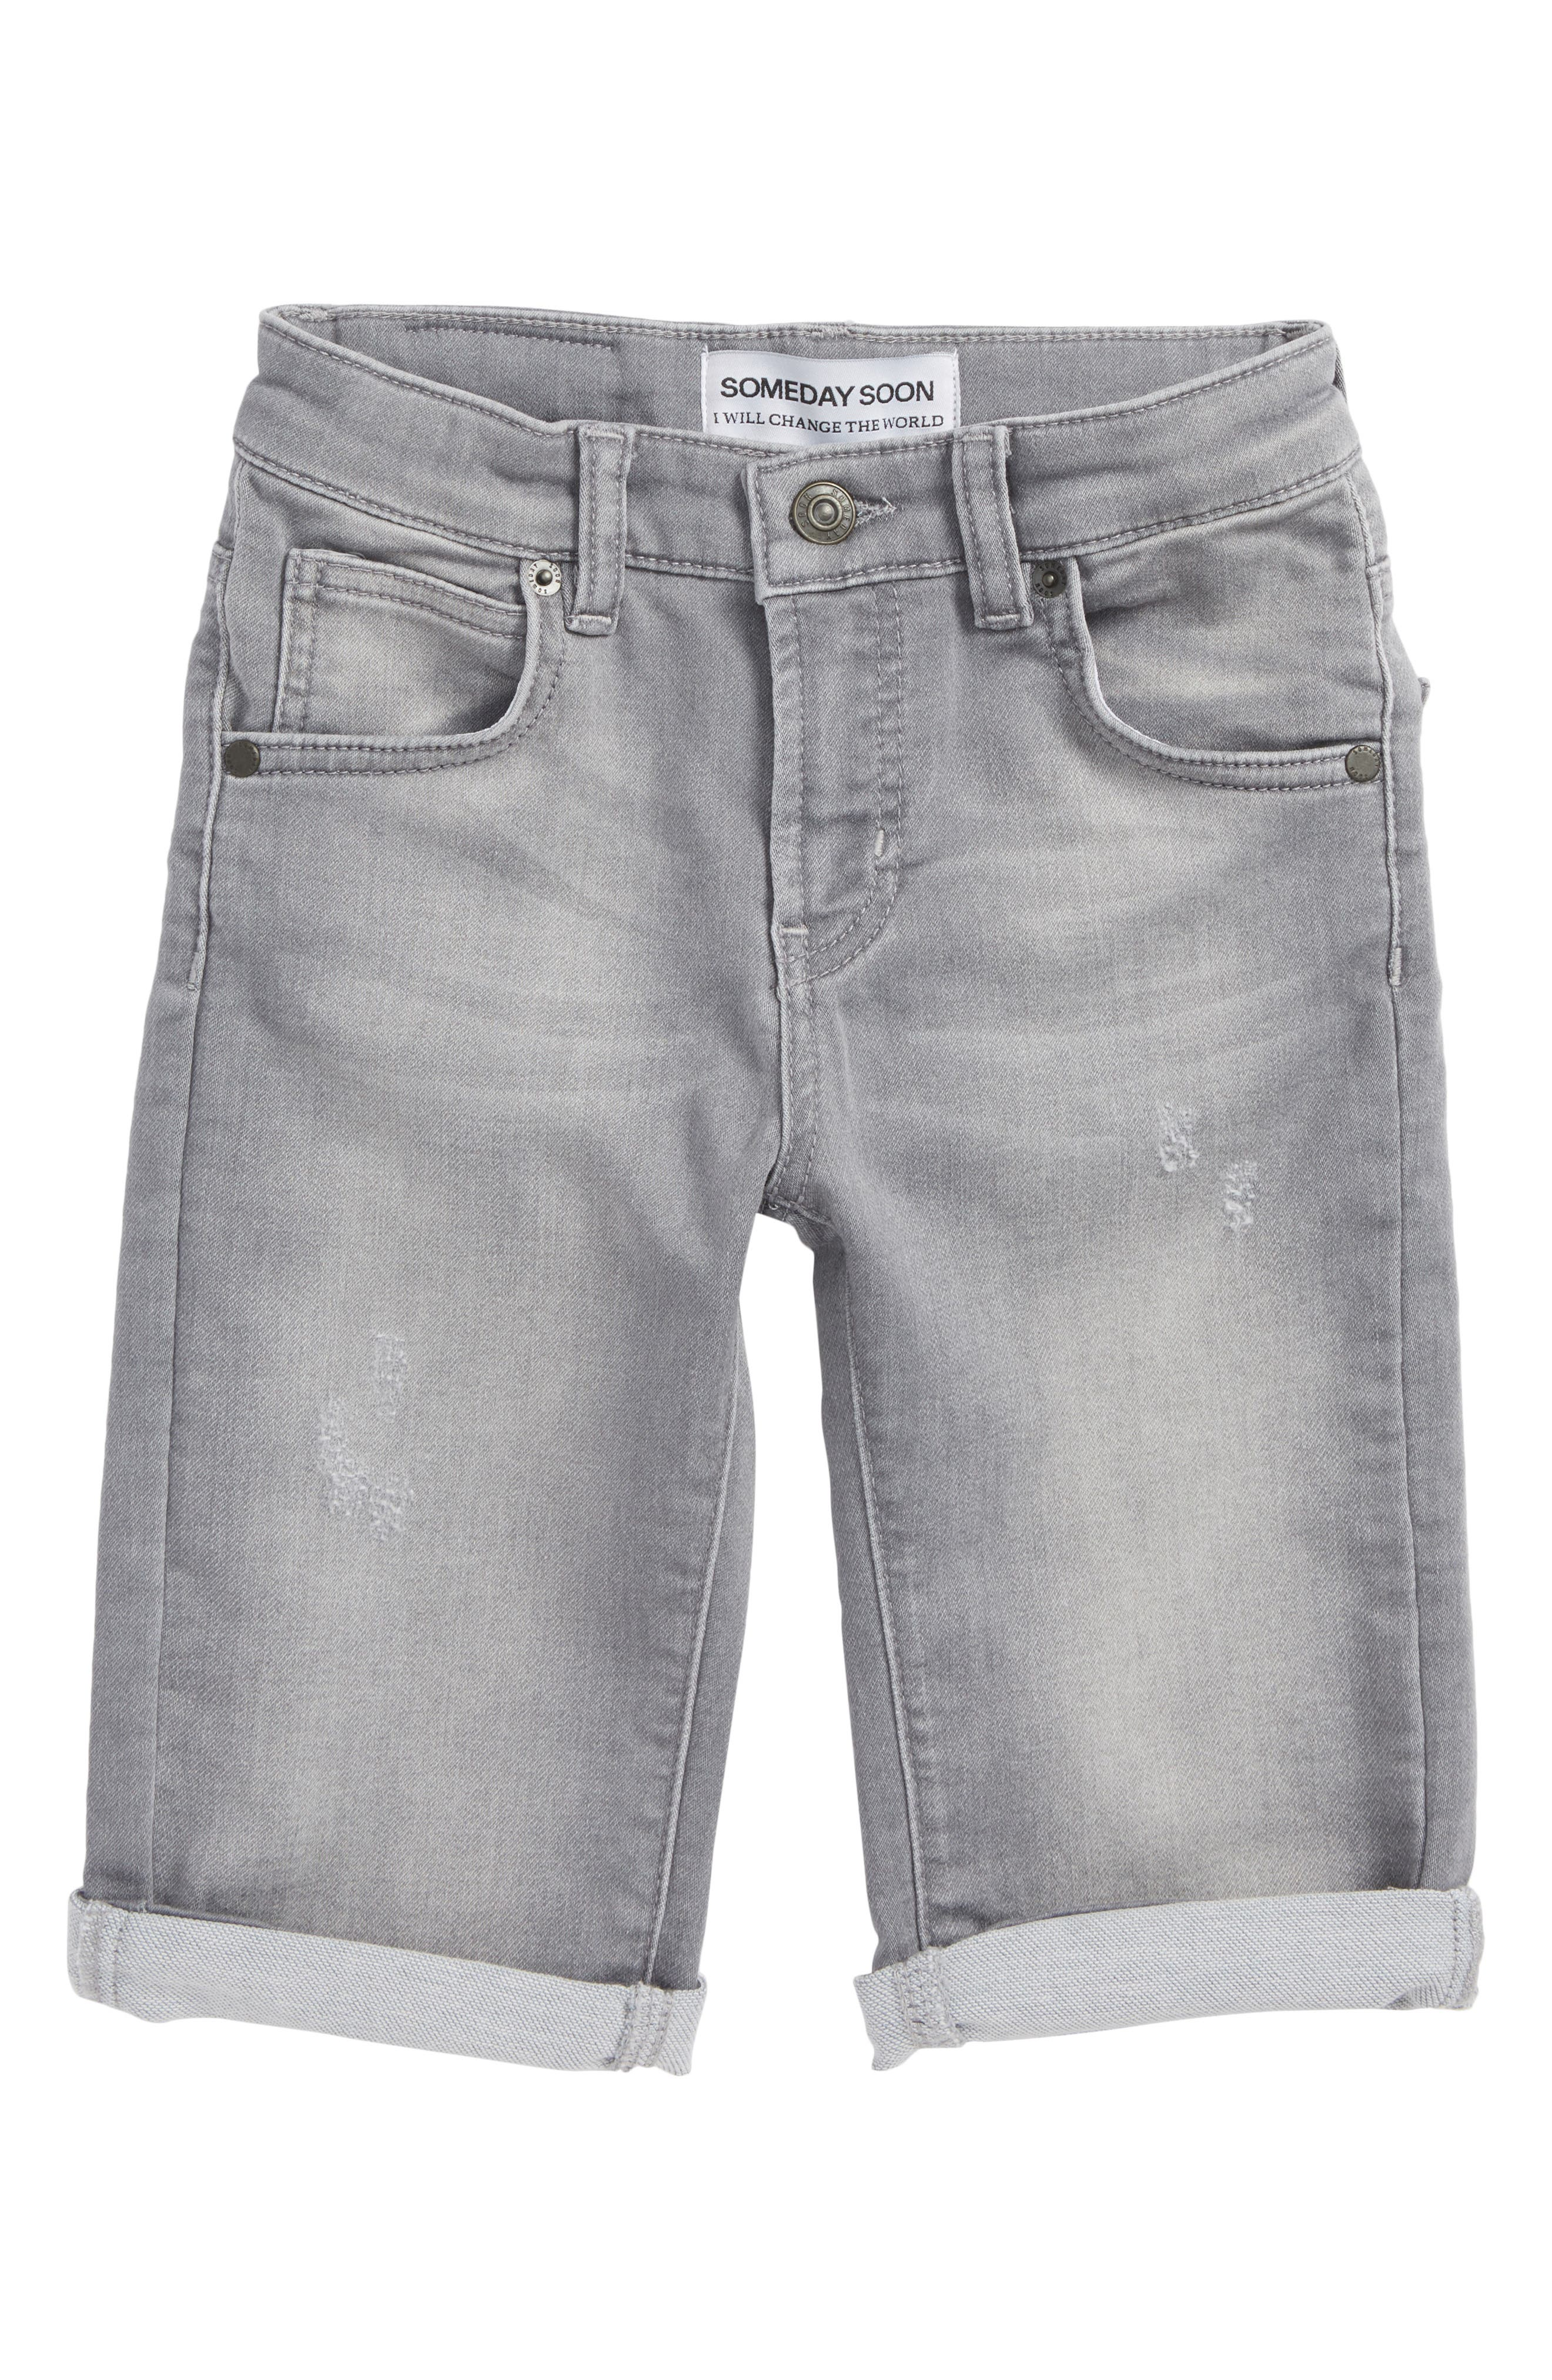 Carl Denim Shorts,                             Main thumbnail 1, color,                             020